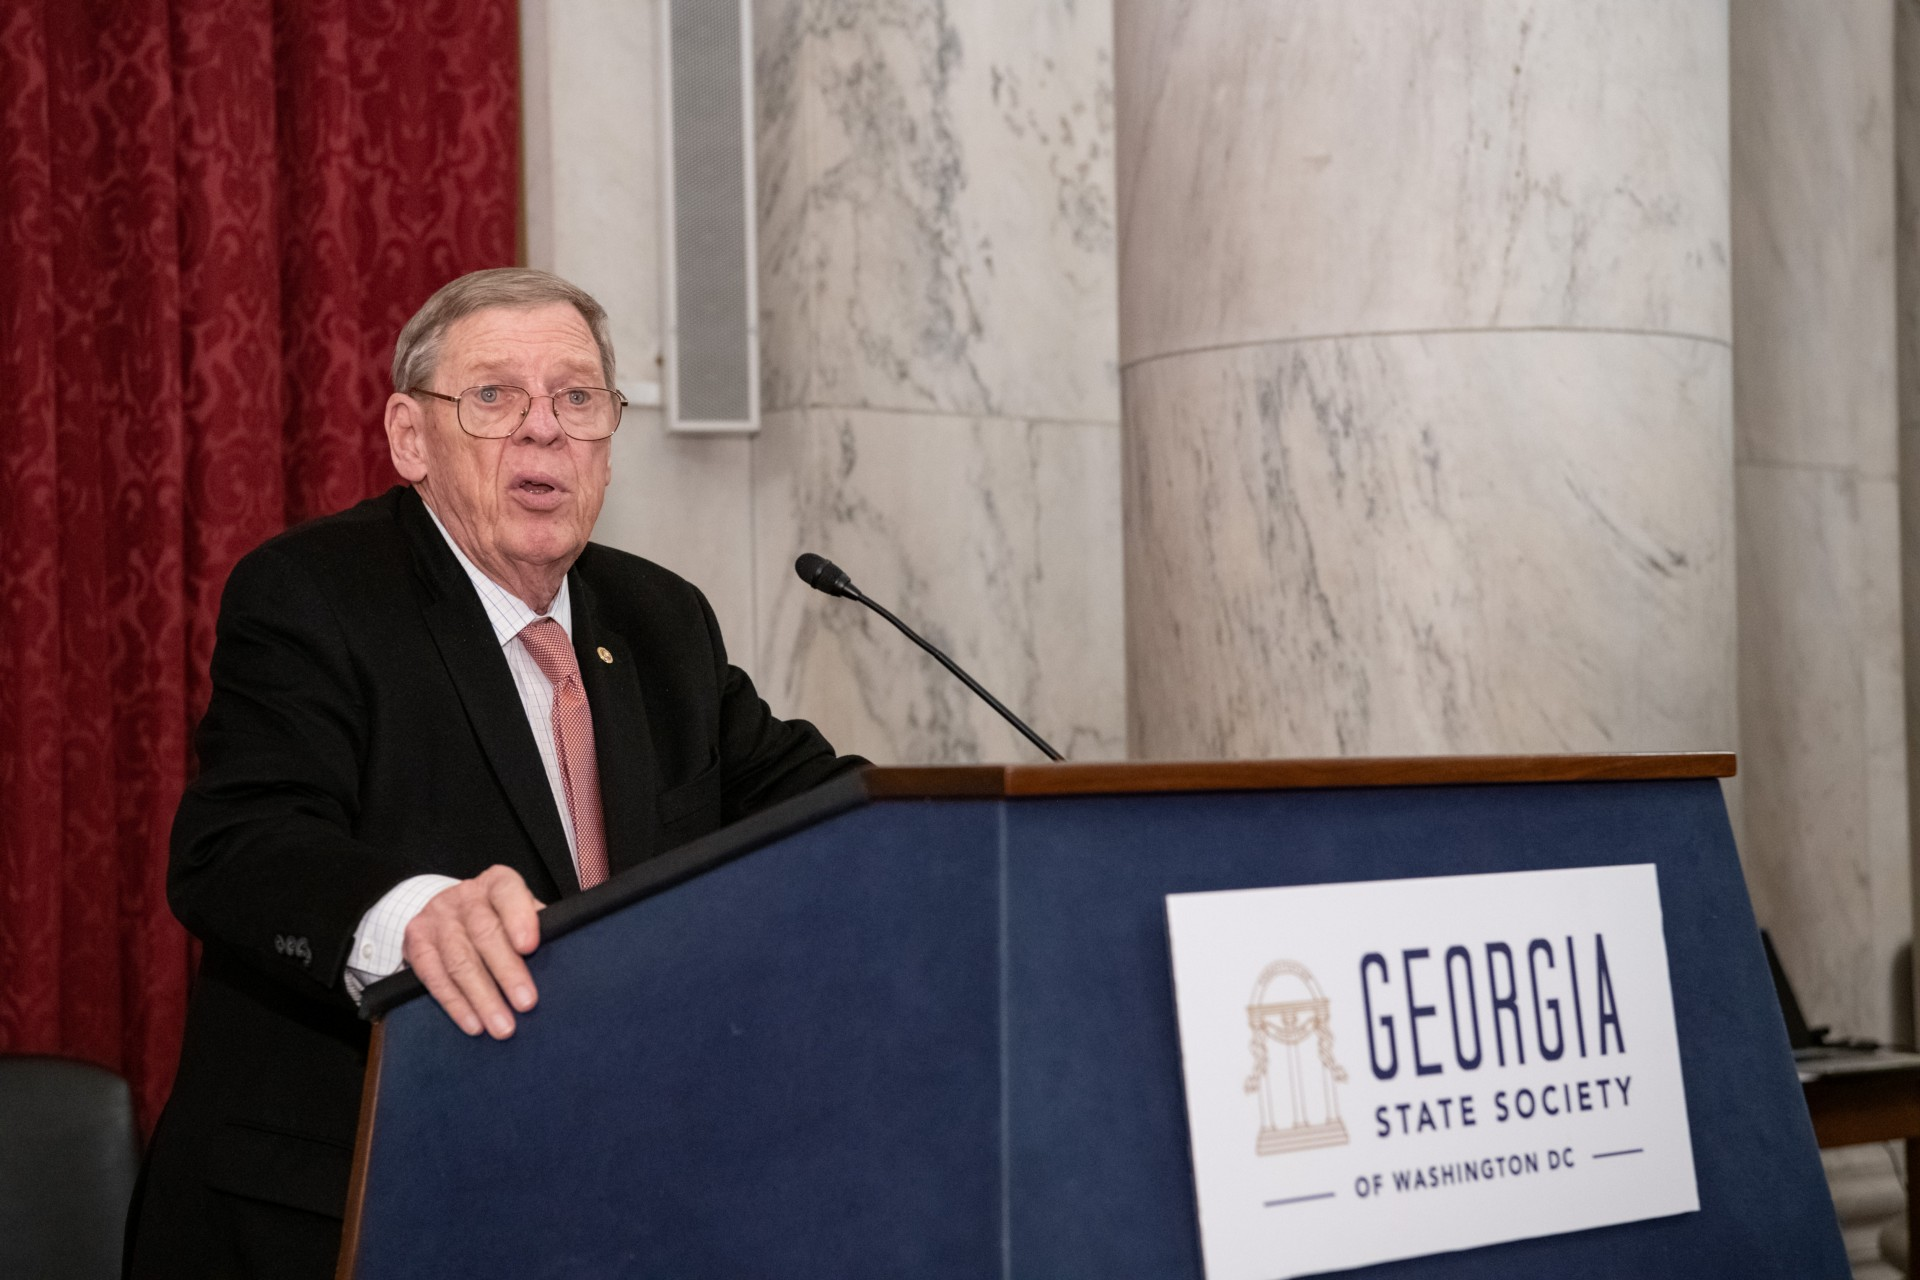 Sen. Johnny Isakson address the Georgia State Society during a farewell ceremony